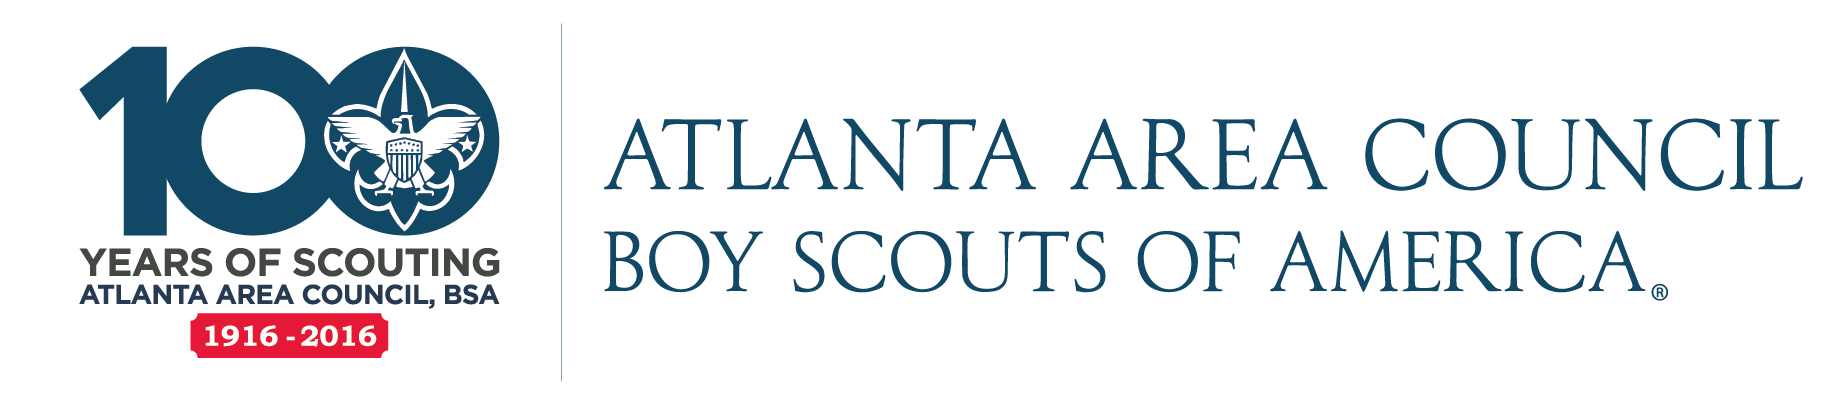 Atlanta Area Council